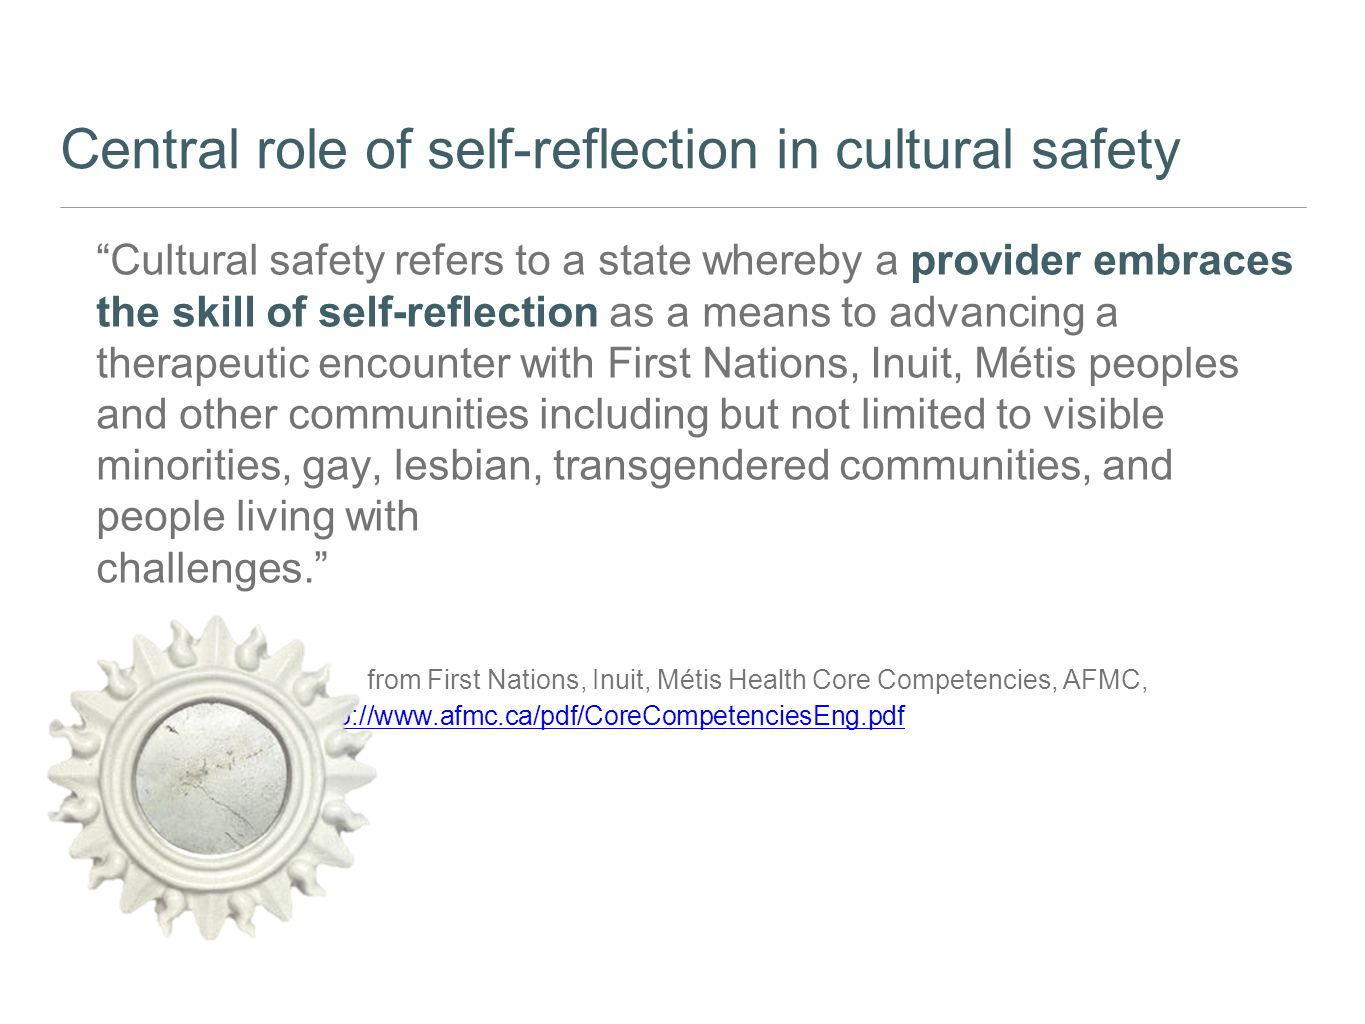 Central role of self-reflection in cultural safety